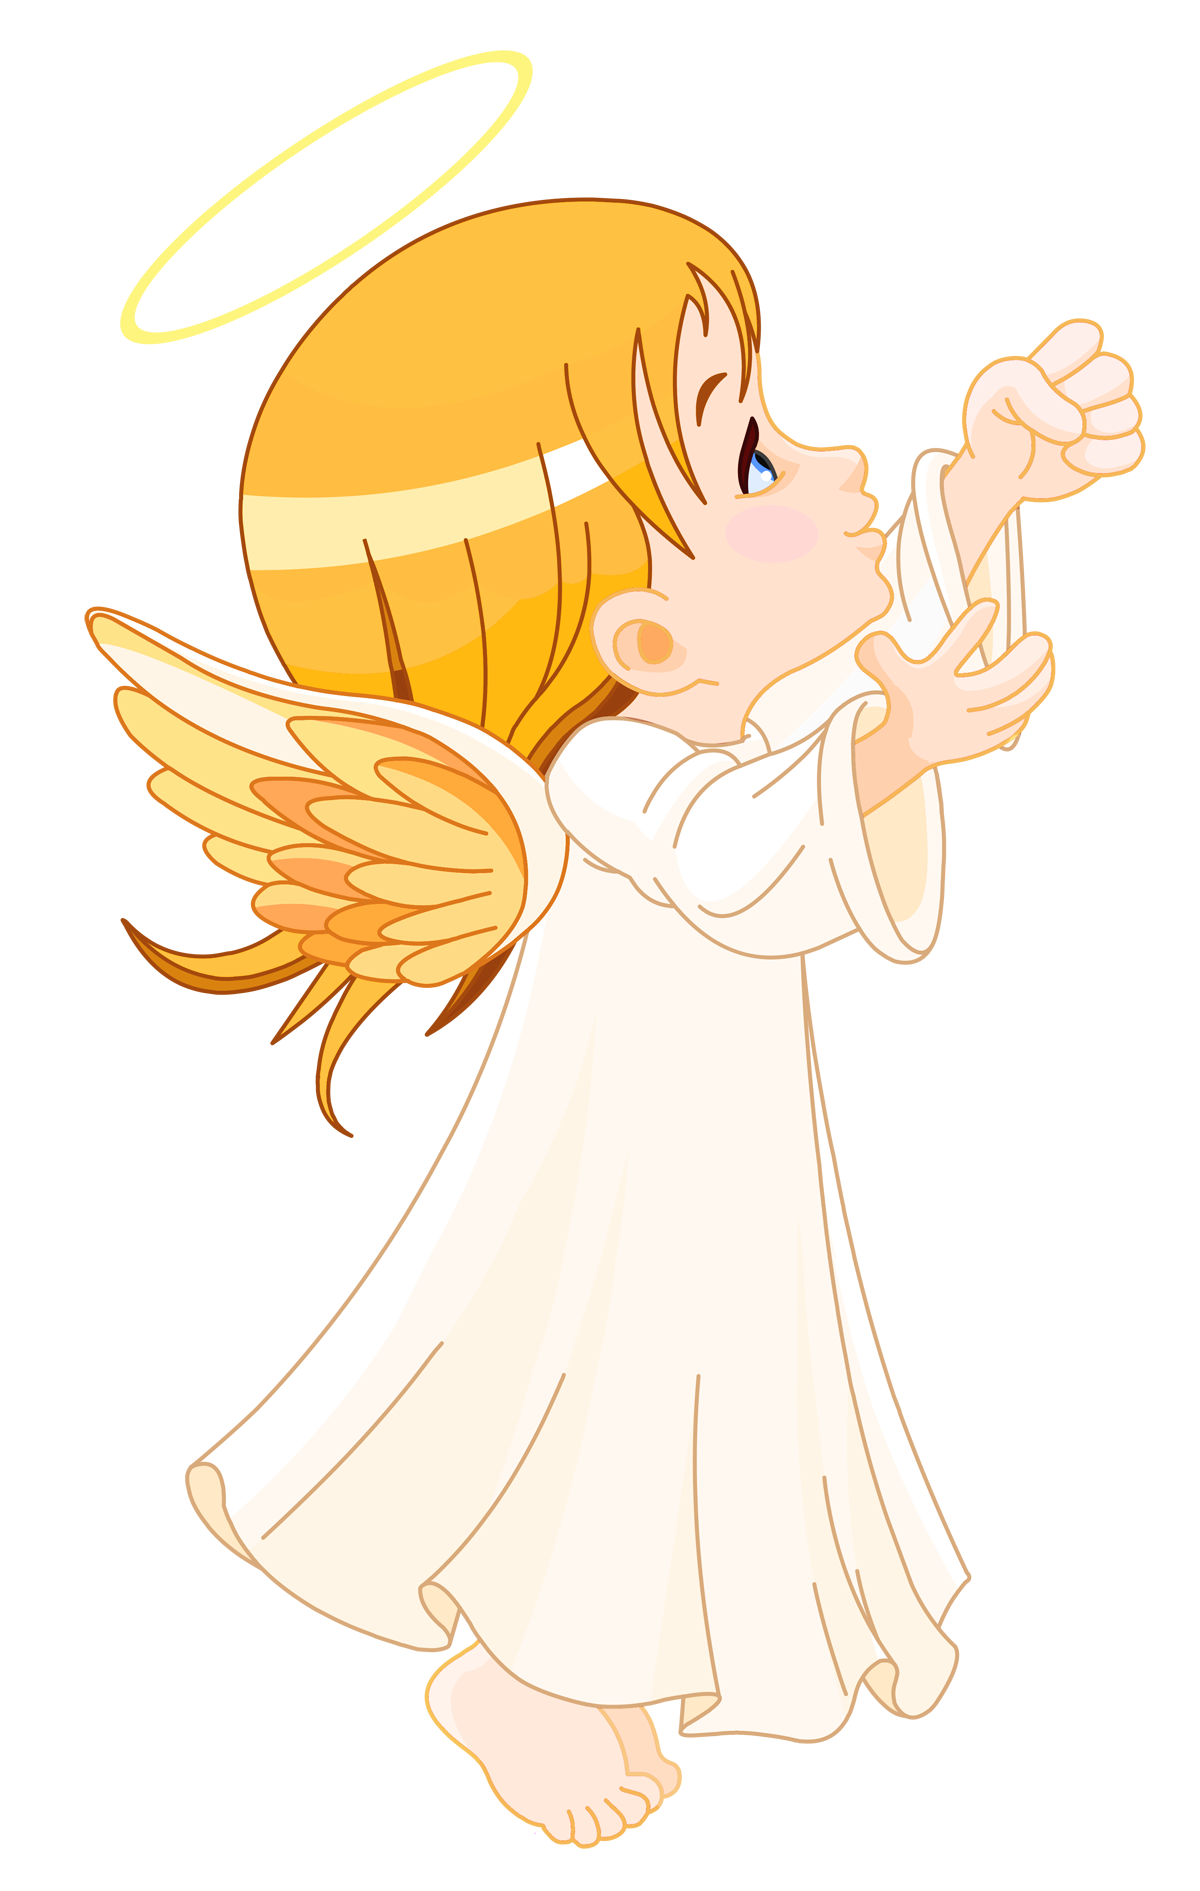 Angel png clipart. Cute little large size